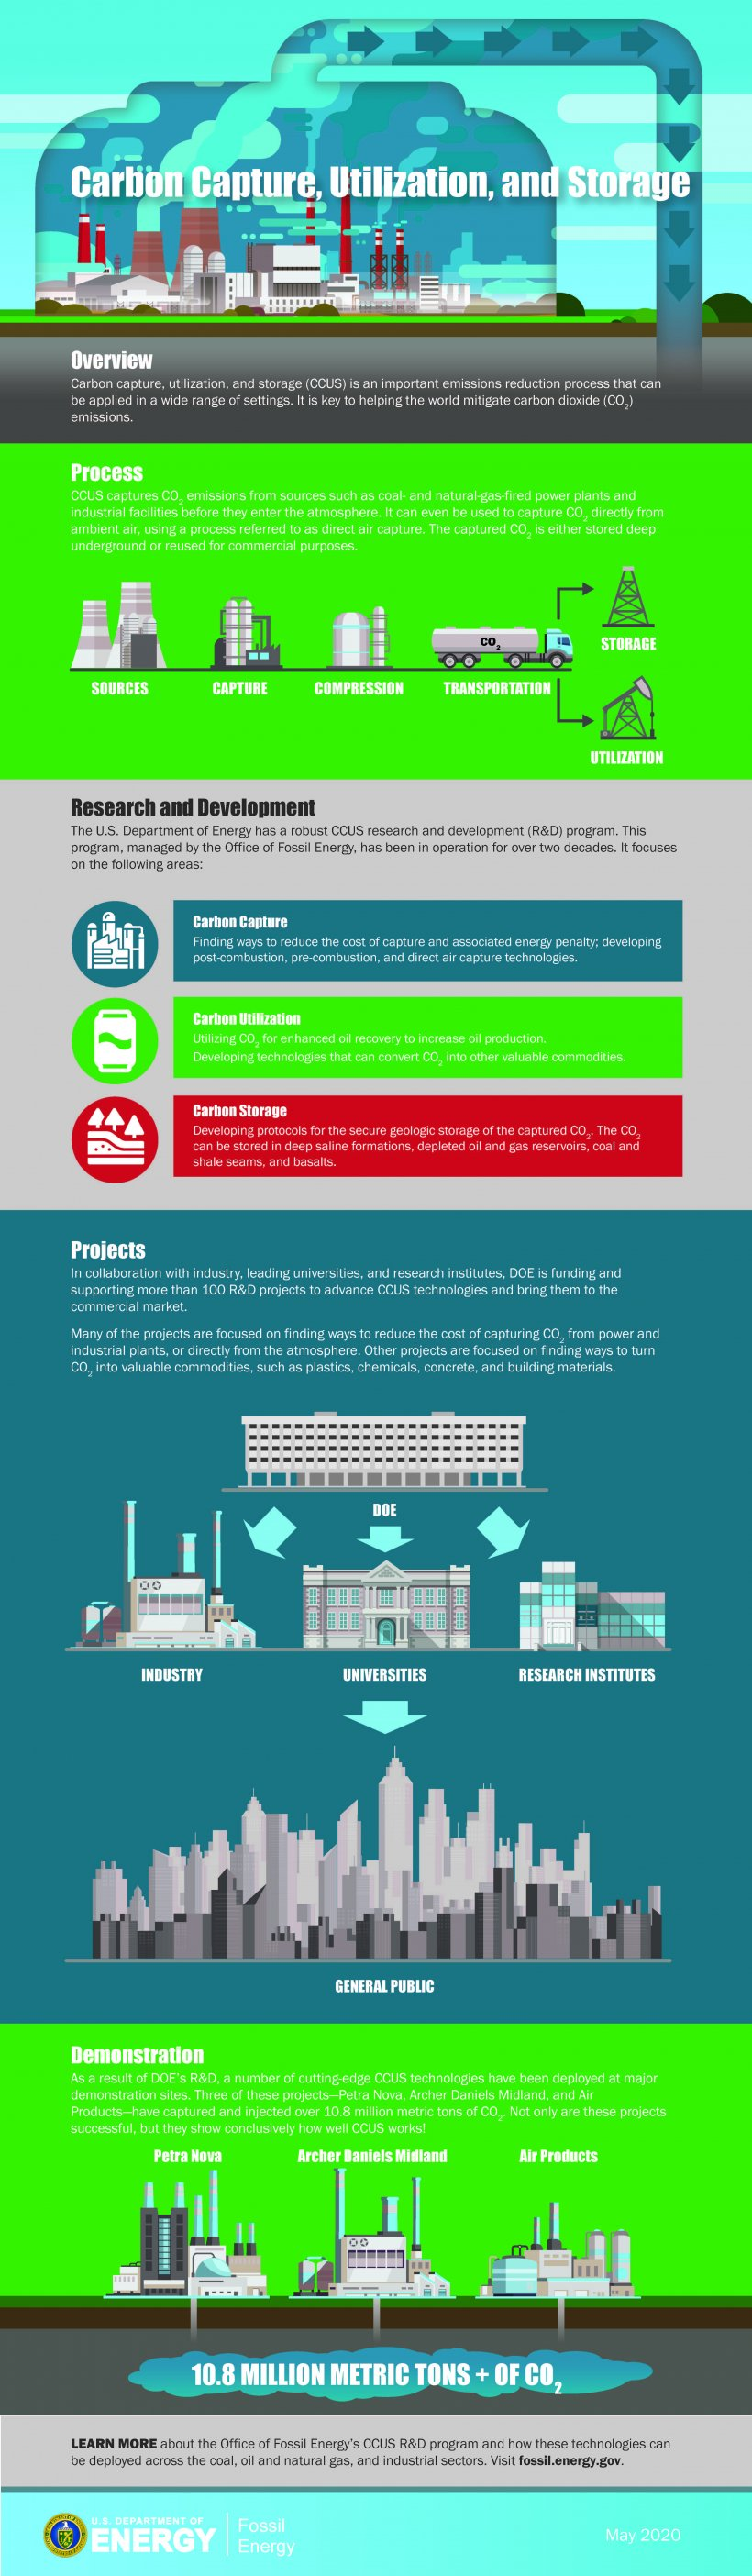 Carbon Capture, Utilization, and Storage Infographic